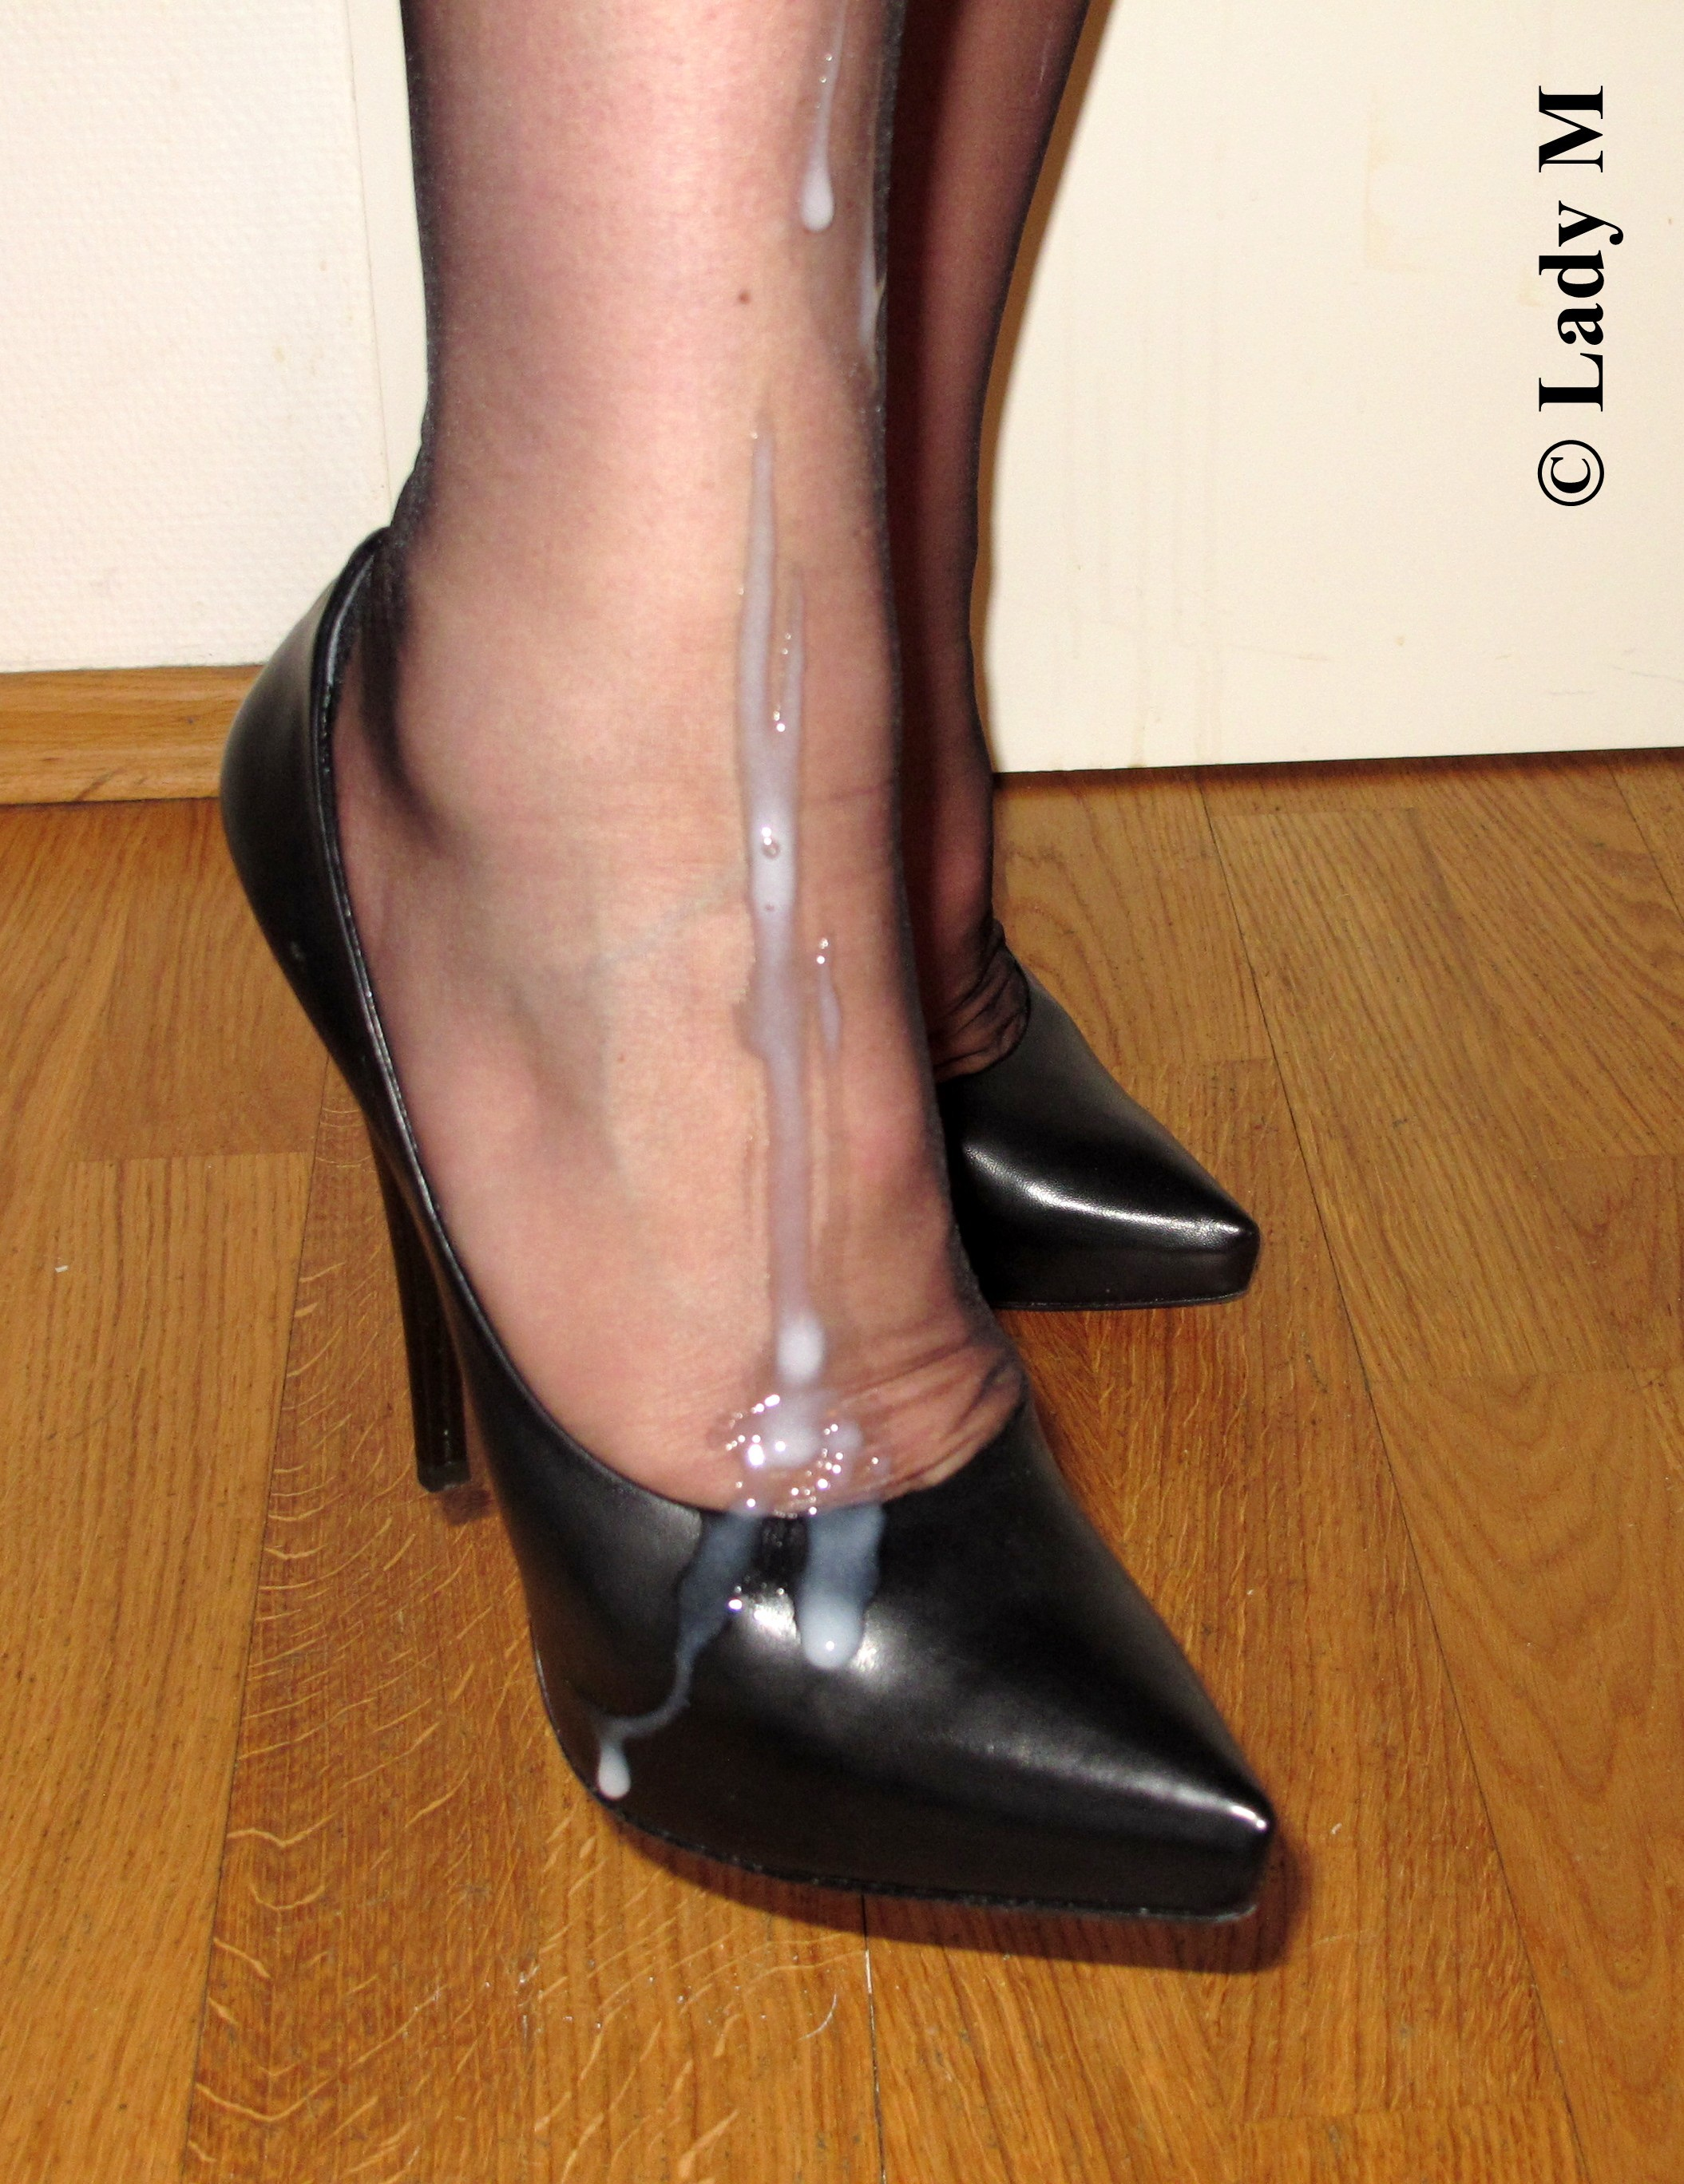 cum on shoes - jerk-your-cock-and-splash-your-cum-on-my-nylons-and-high-heels-2.jpg -  MOTHERLESS.COM